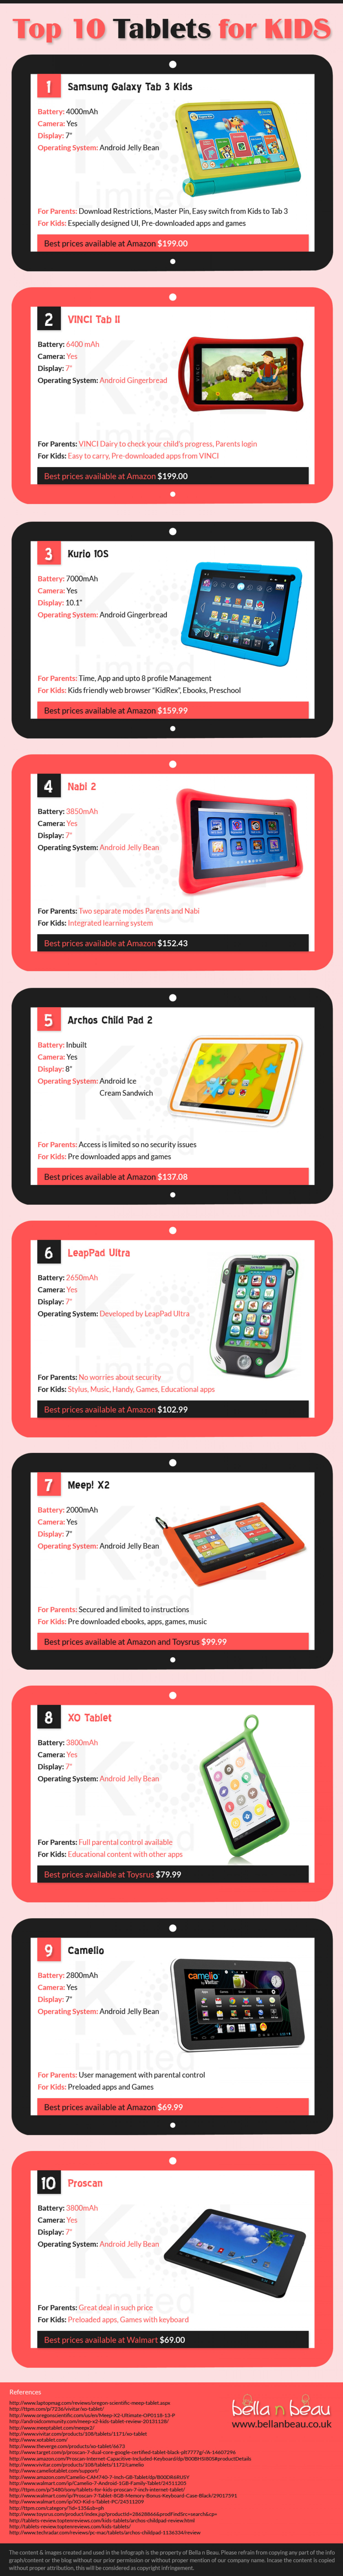 Top 10 Tablets For Kids Infographic